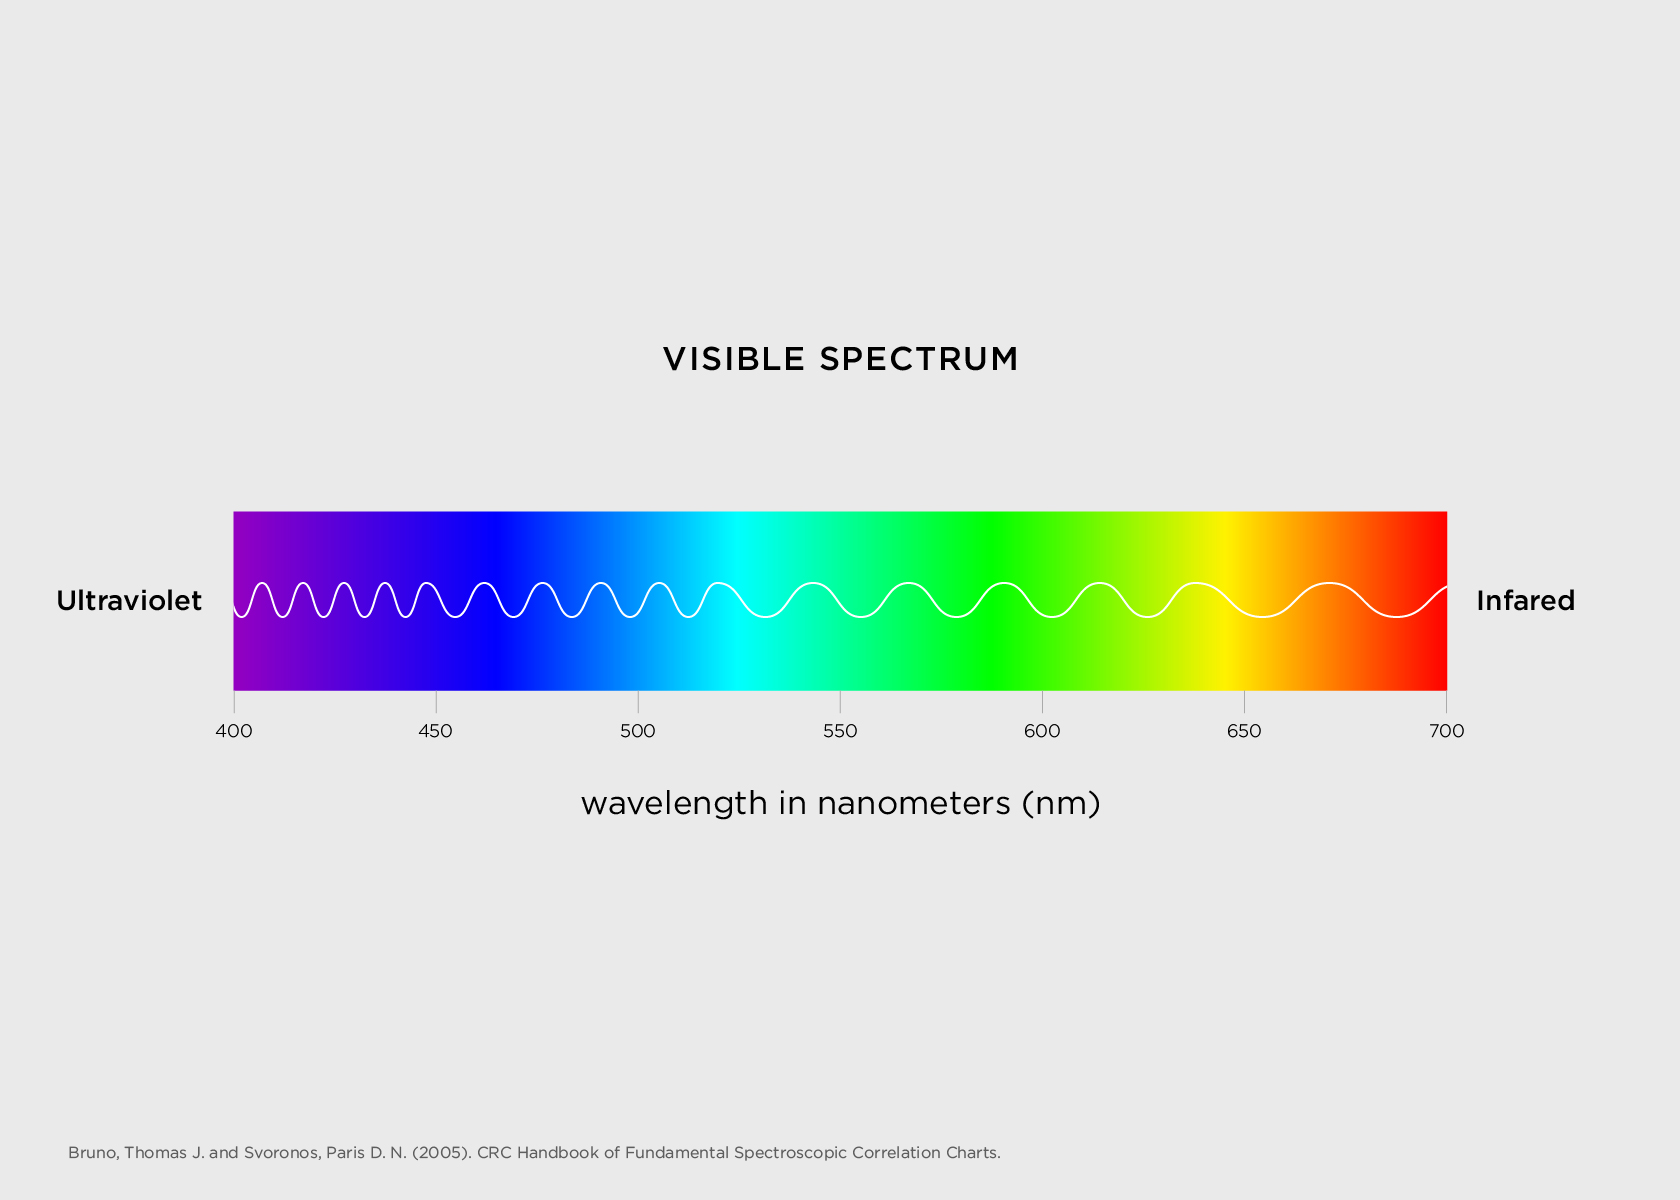 The visible spectrum, from color purple to red.